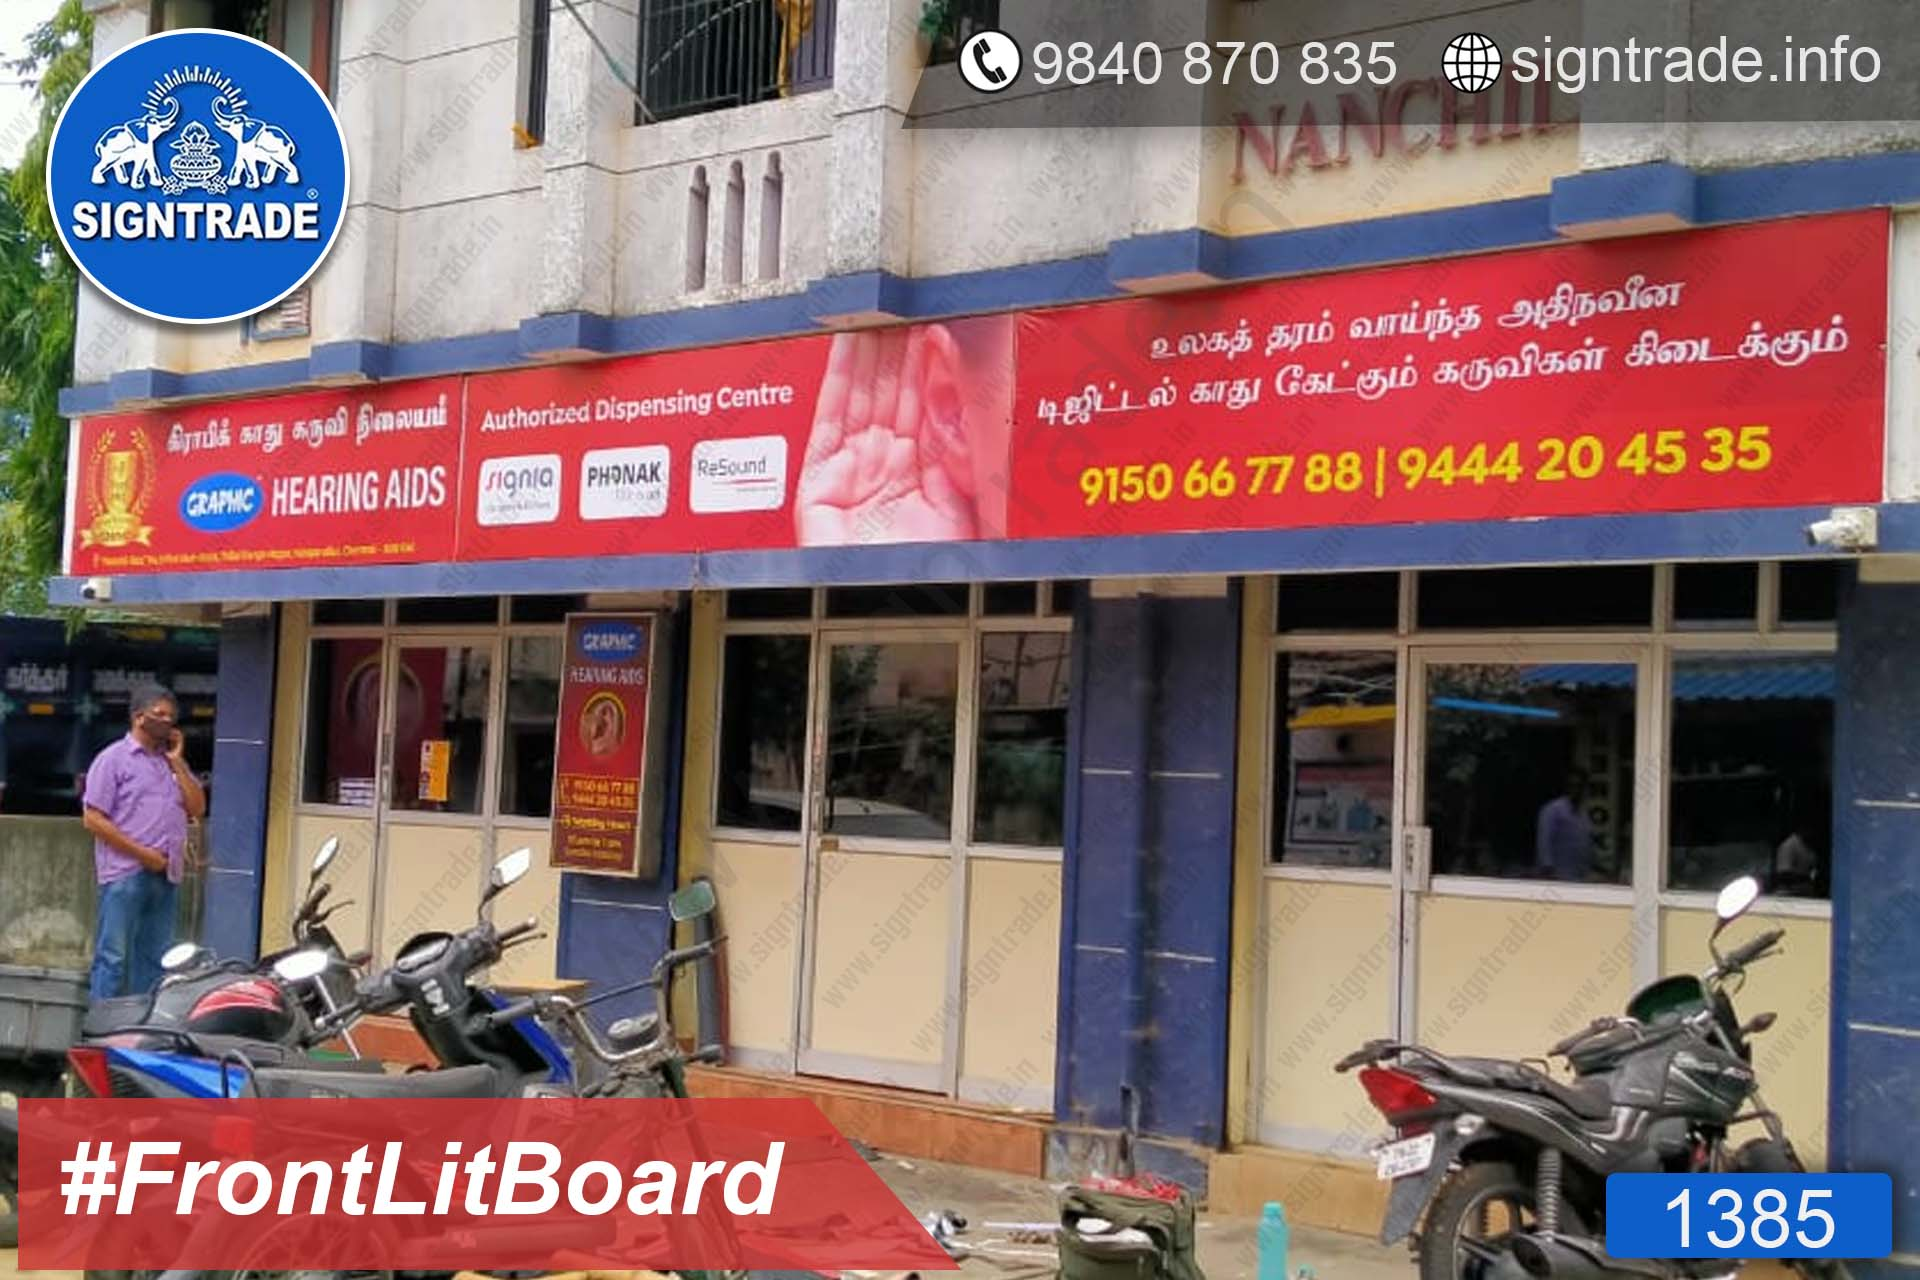 Graphic Hearing Aids, Nanganallur, Chennai - 1385, Flex Board, Frontlit Flex Board, Star Frontlit Flex Board, Frontlit Flex Banners, Shop Front Flex Board, Shop Flex Board